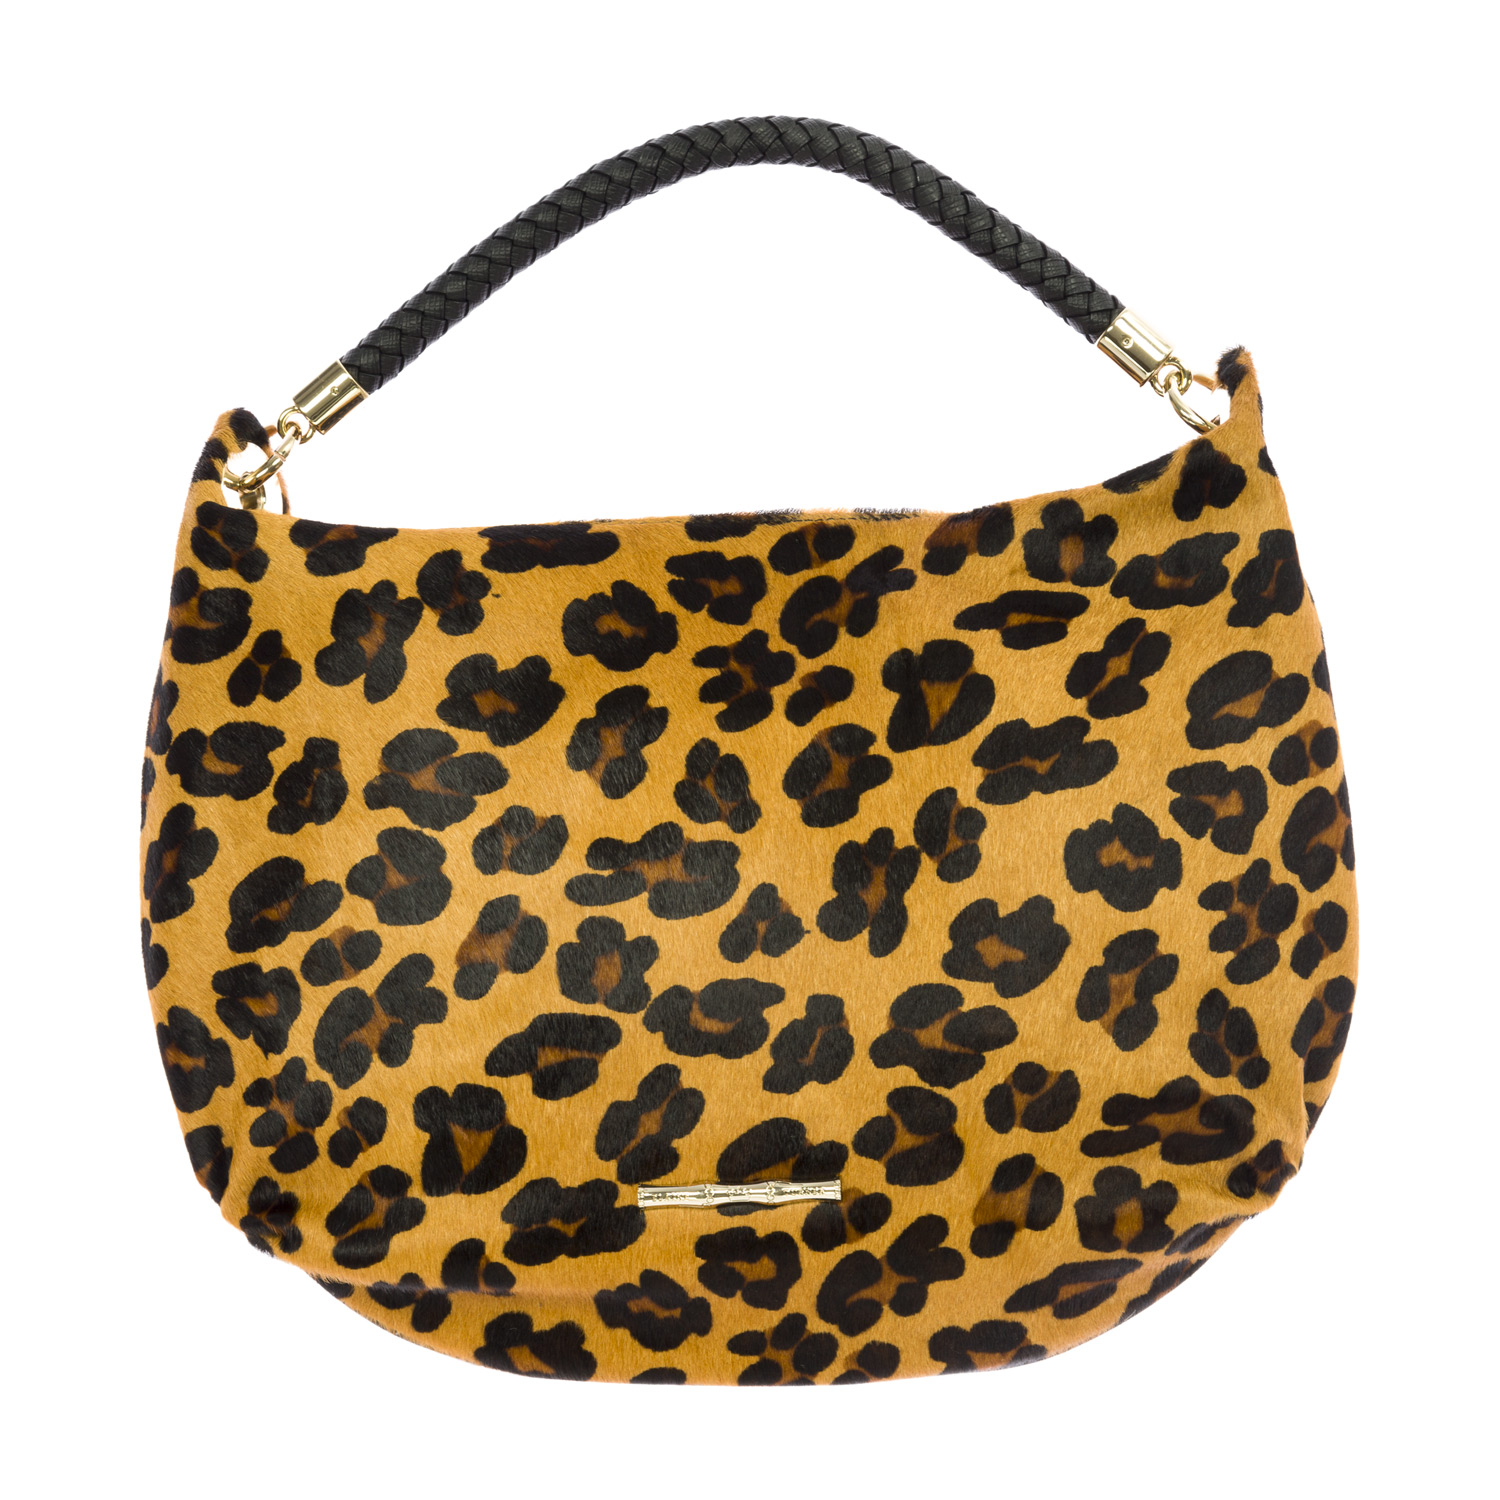 Elaine Turner Women's Calf Hair Stella Hobo Bag One Size Cheetah Print